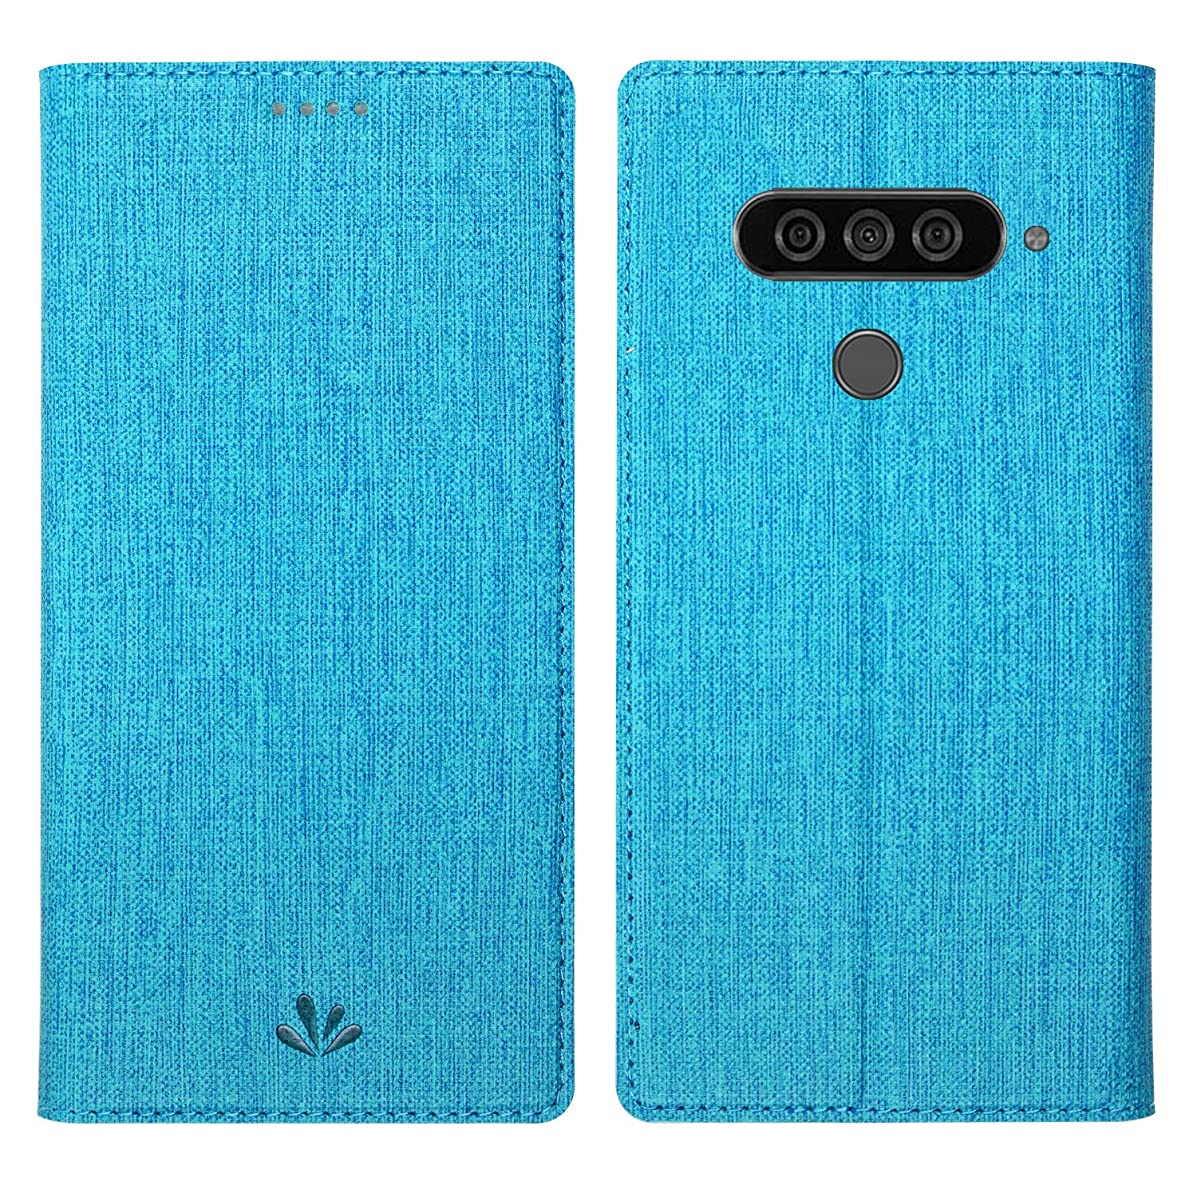 Simicoo LG G8 ThinQ Flip PU Leather Slim Fit case Card Holster Stand Magnetic Cover Clear Silicone TPU Full Body Shockproof Pocket Thin Wallet Case for LG G8 ThinQ (Blue, LG G8 ThinQ)